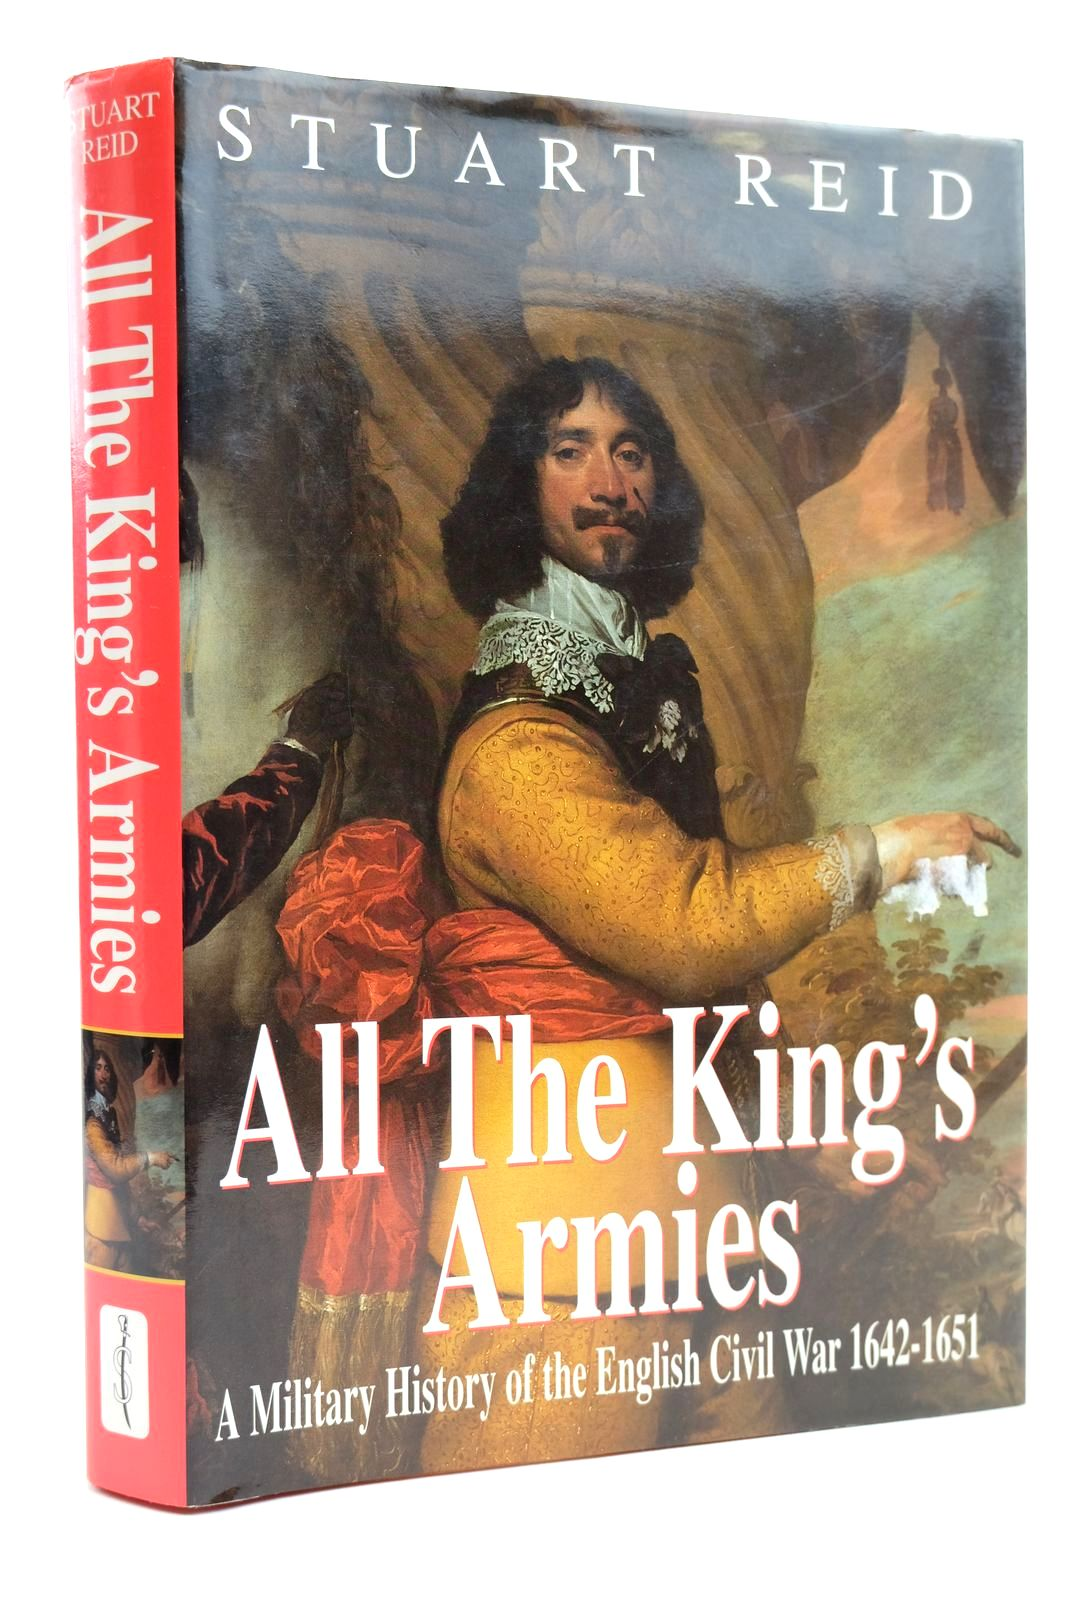 Photo of ALL THE KING'S ARMIES written by Reid, Stuart published by Spellmount Ltd. (STOCK CODE: 2131921)  for sale by Stella & Rose's Books